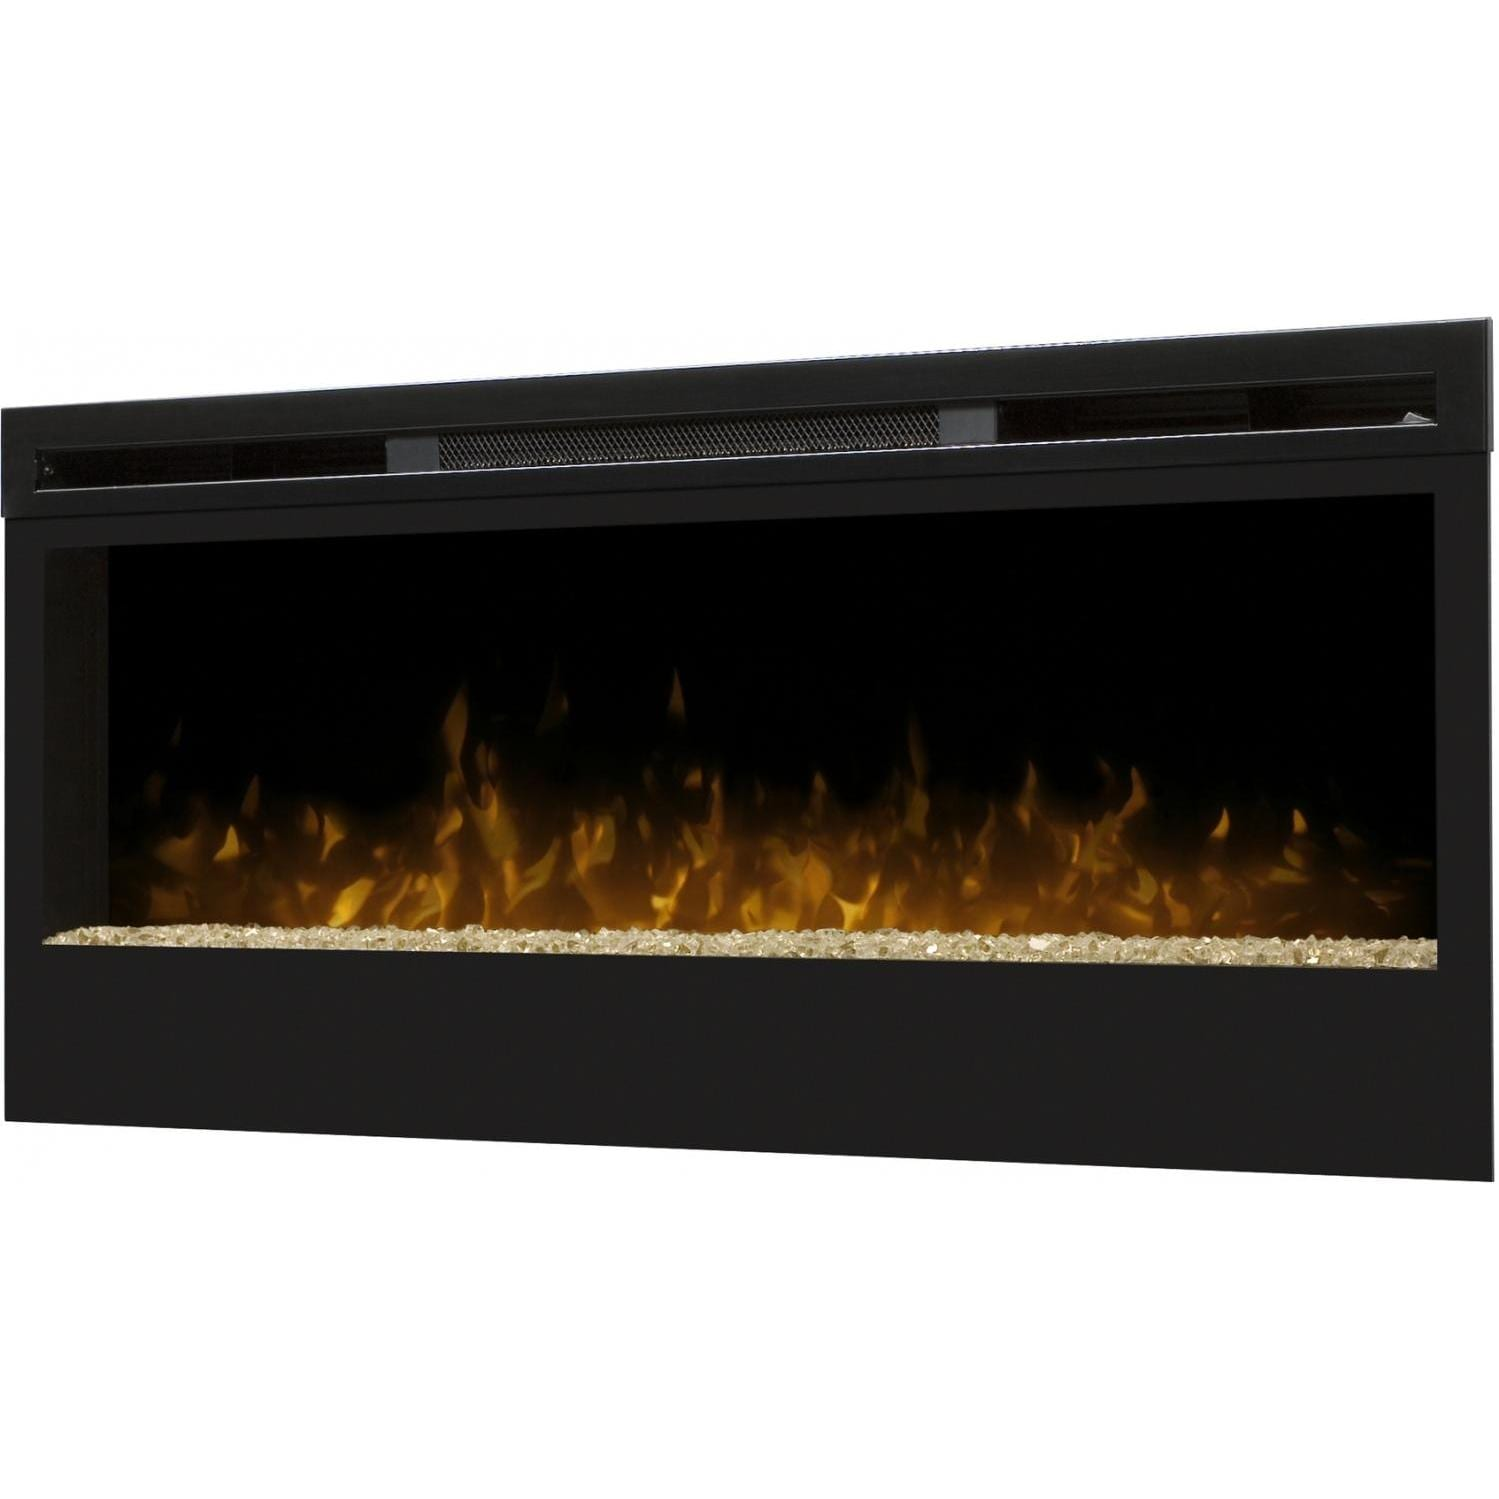 Dimplex Synergy 50 Inch Wall Mount Electric Fireplace Black Blf50 Gas Log